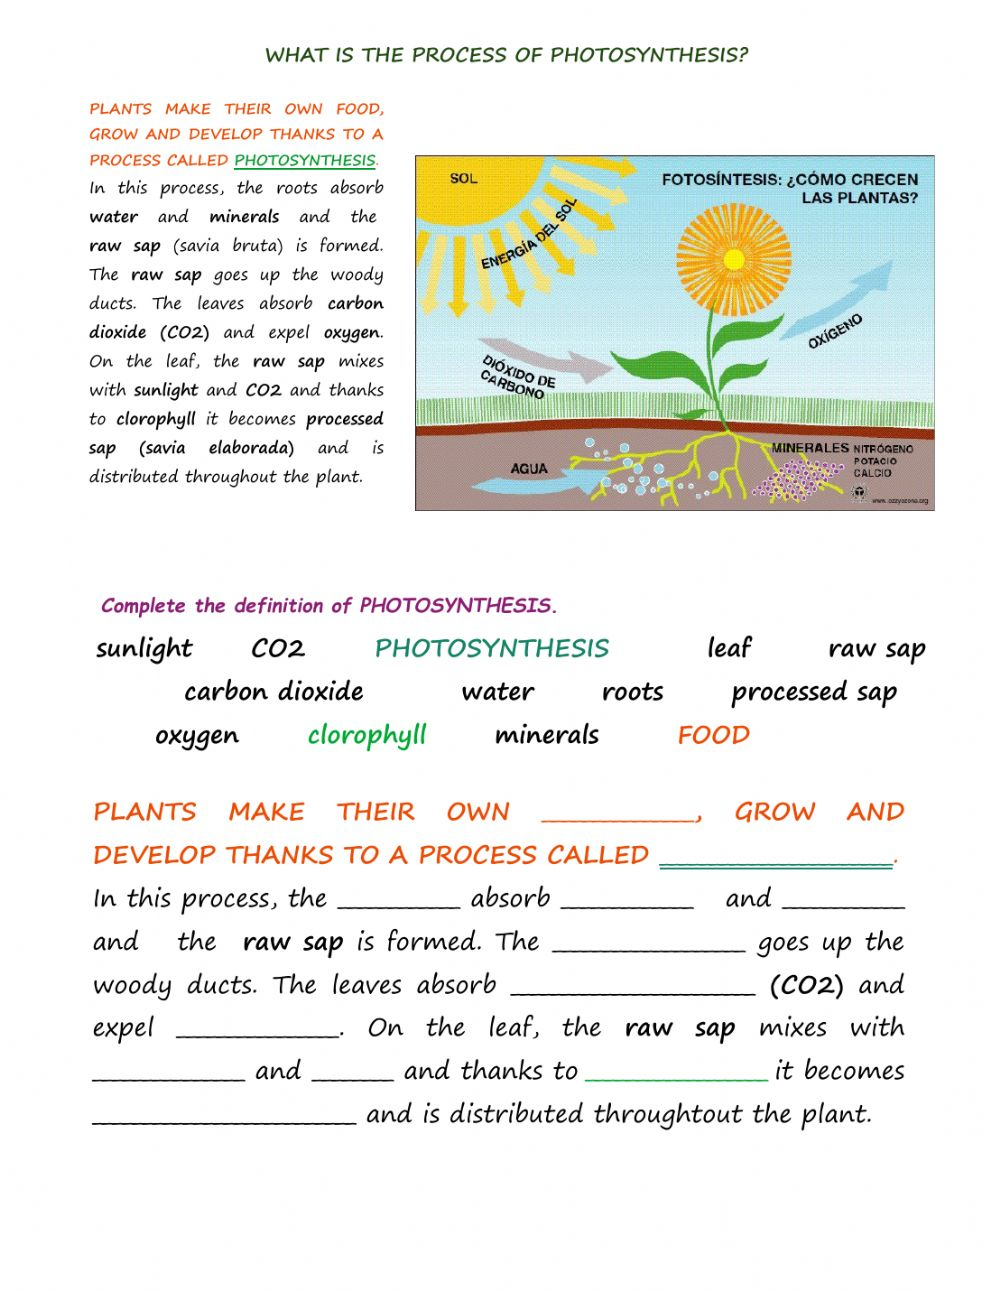 Photosynthesis interactive exercise for 6th level